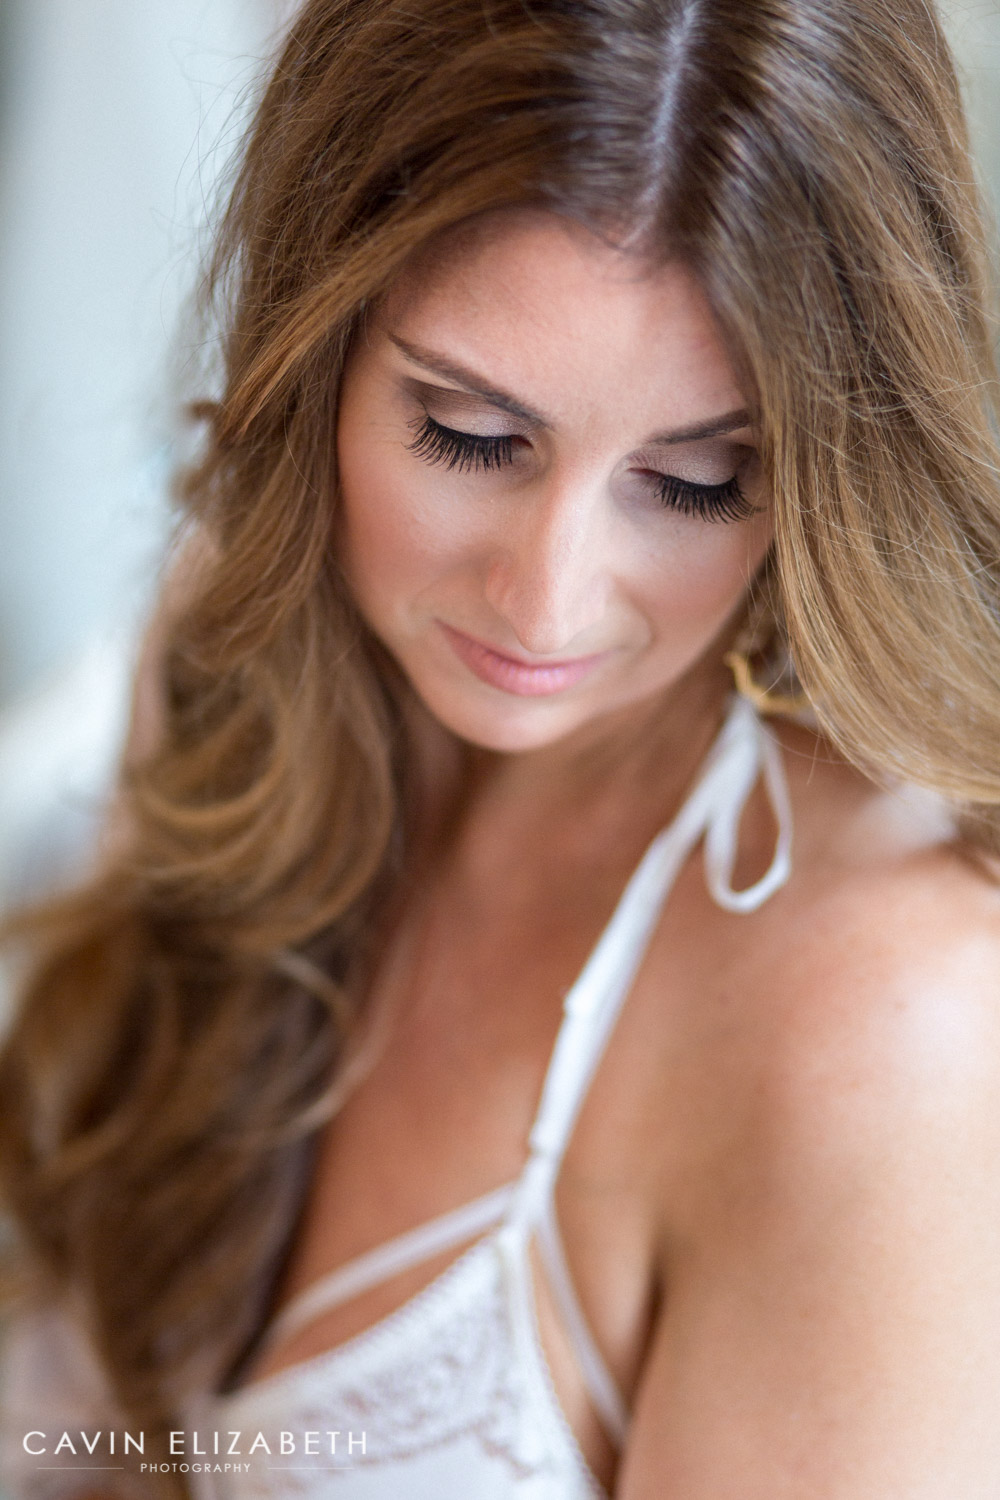 bride to be wears gorgeous white bra for boudoir shoot with cavin elizabeth photography in san diego